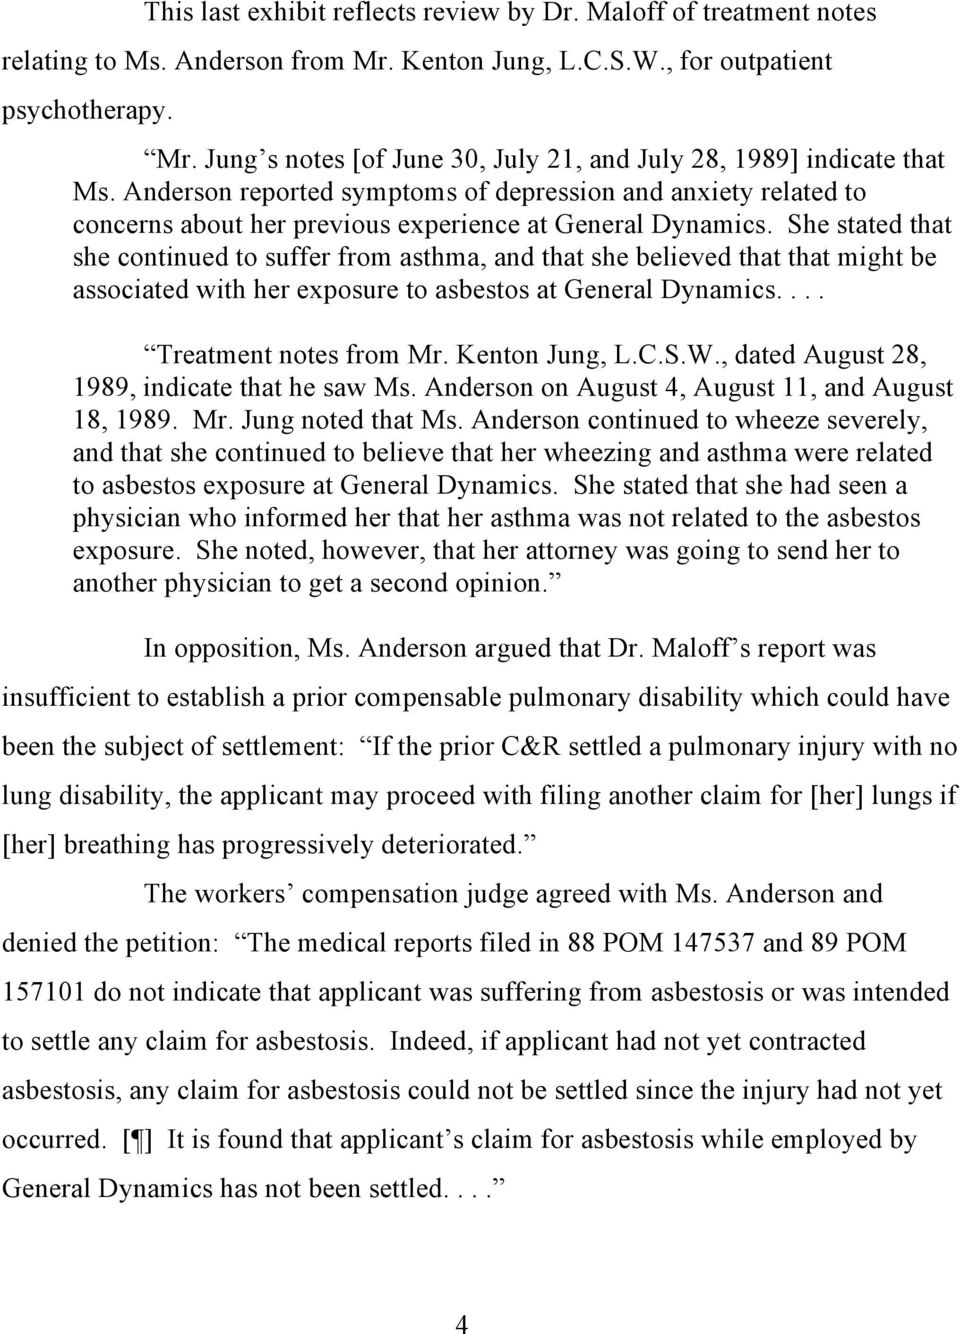 She stated that she continued to suffer from asthma, and that she believed that that might be associated with her exposure to asbestos at General Dynamics.... Treatment notes from Mr. Kenton Jung, L.